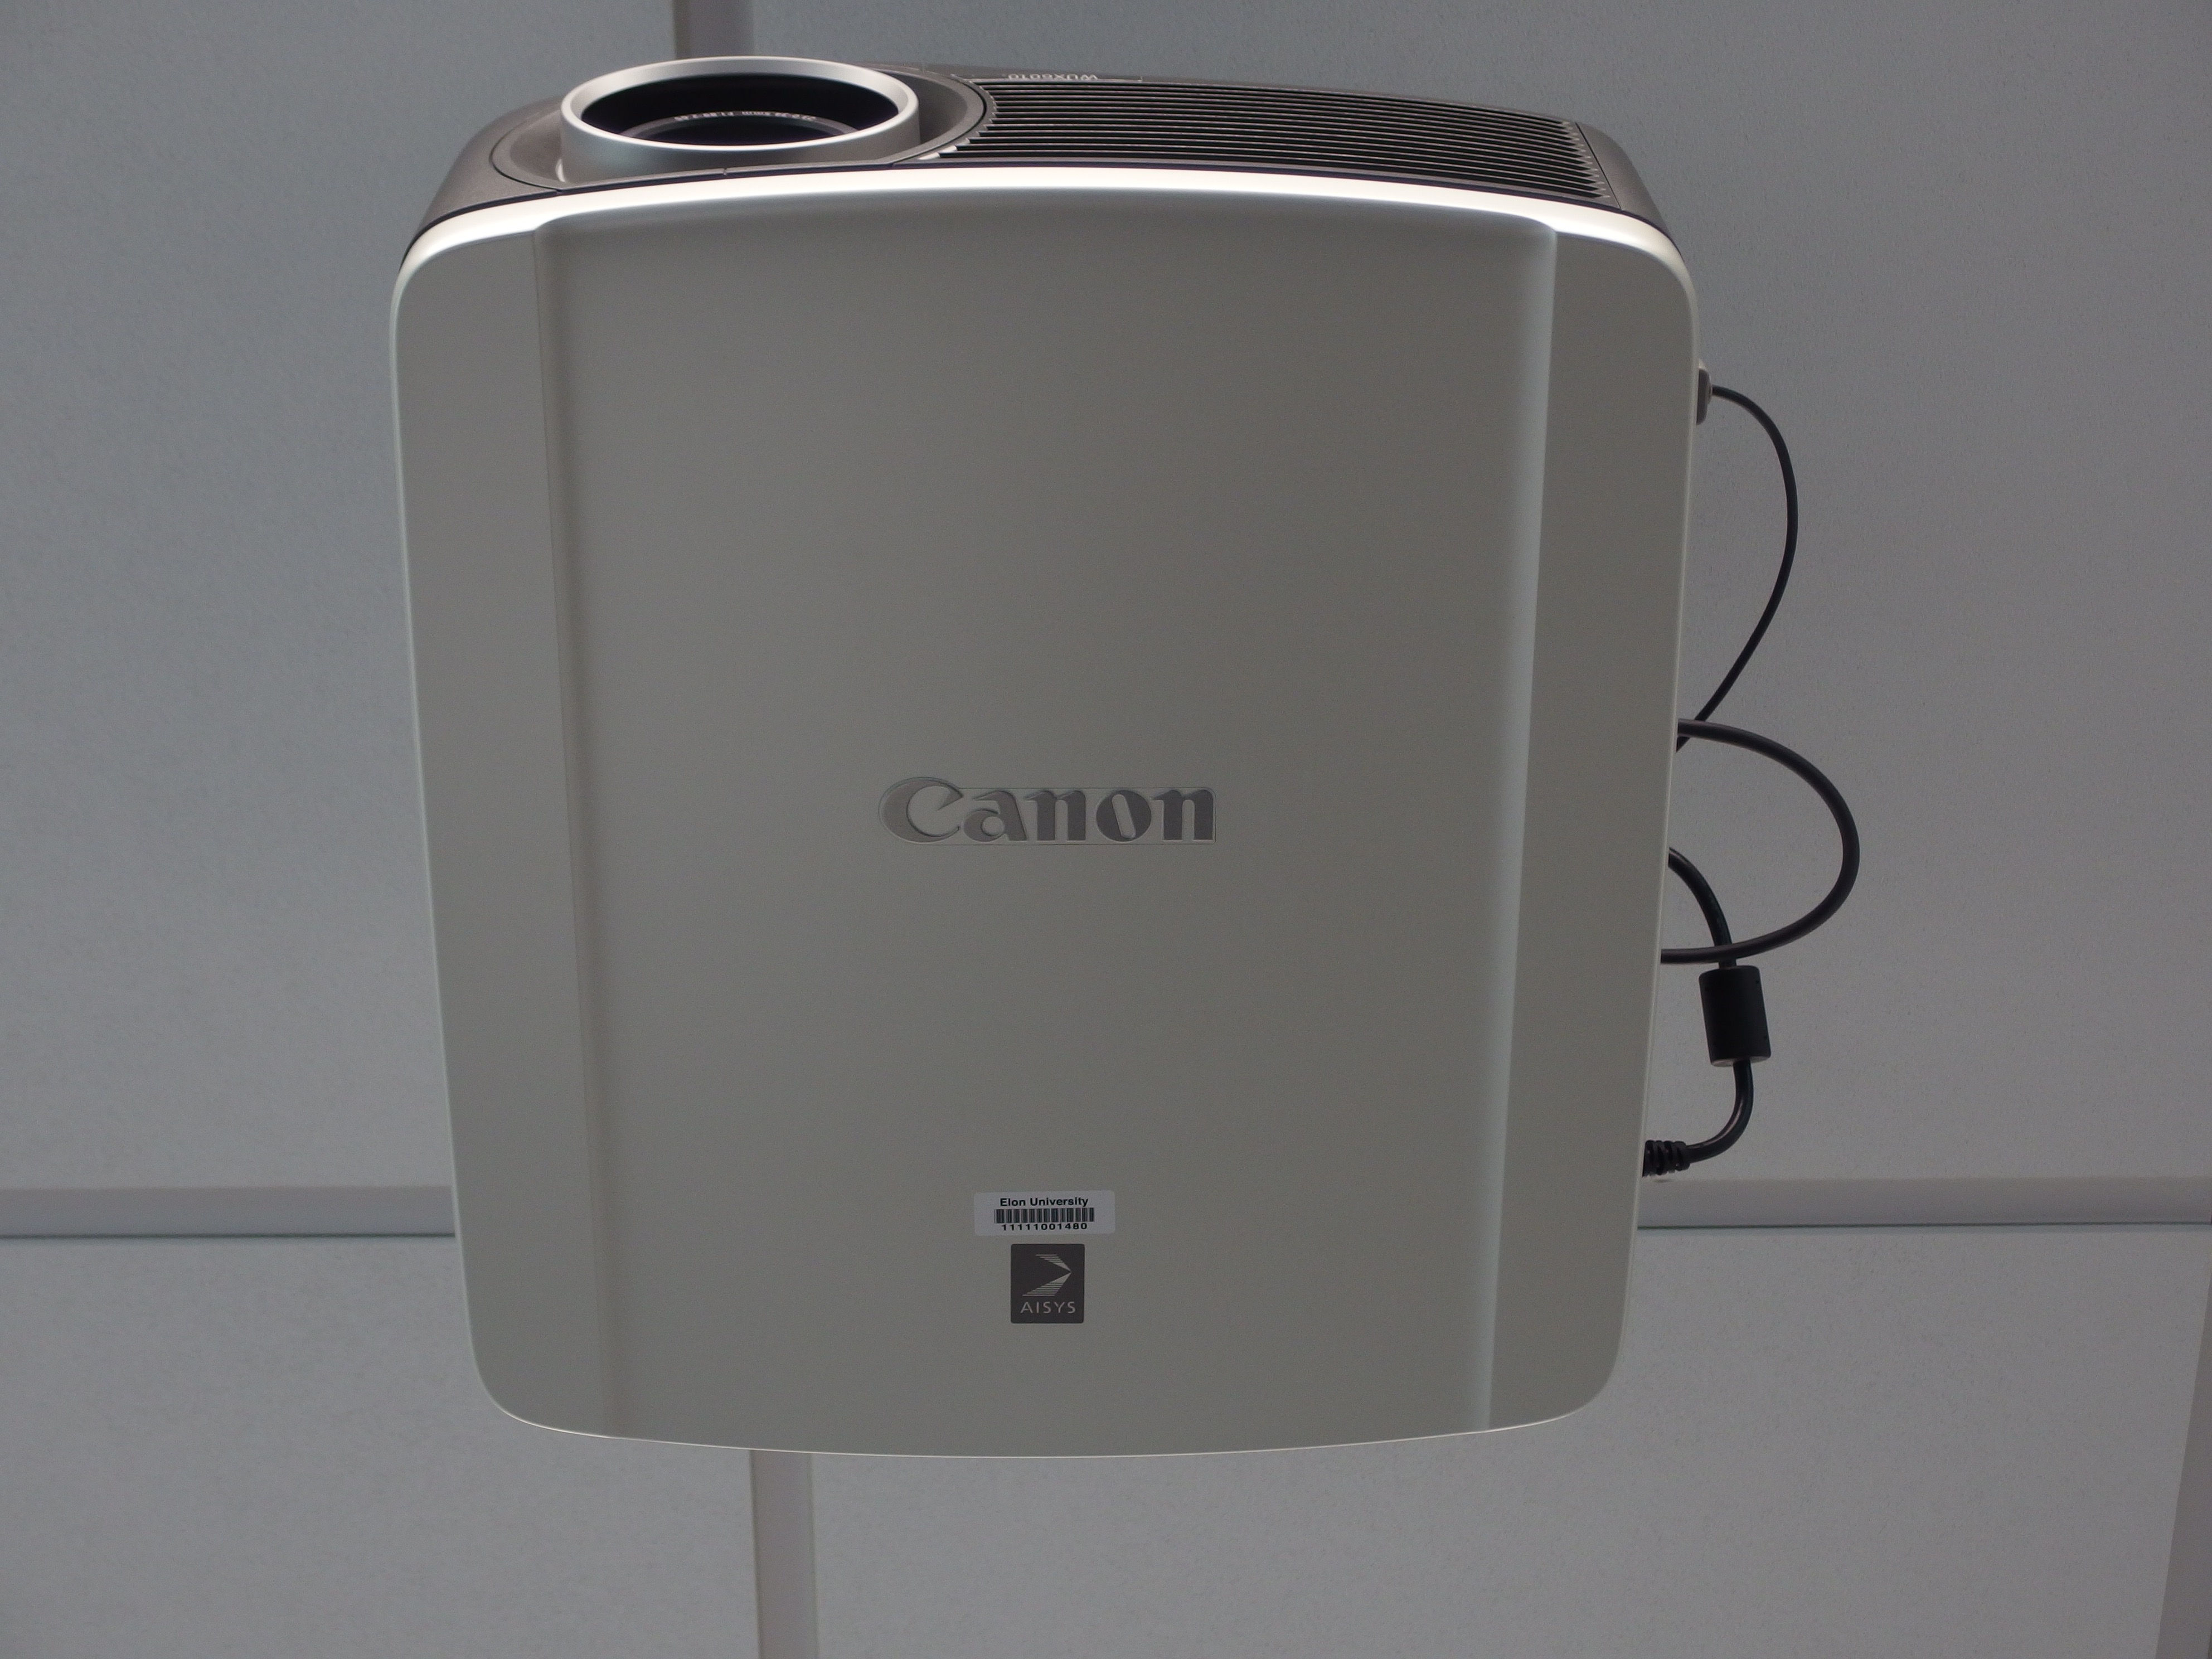 A photo of the projector.